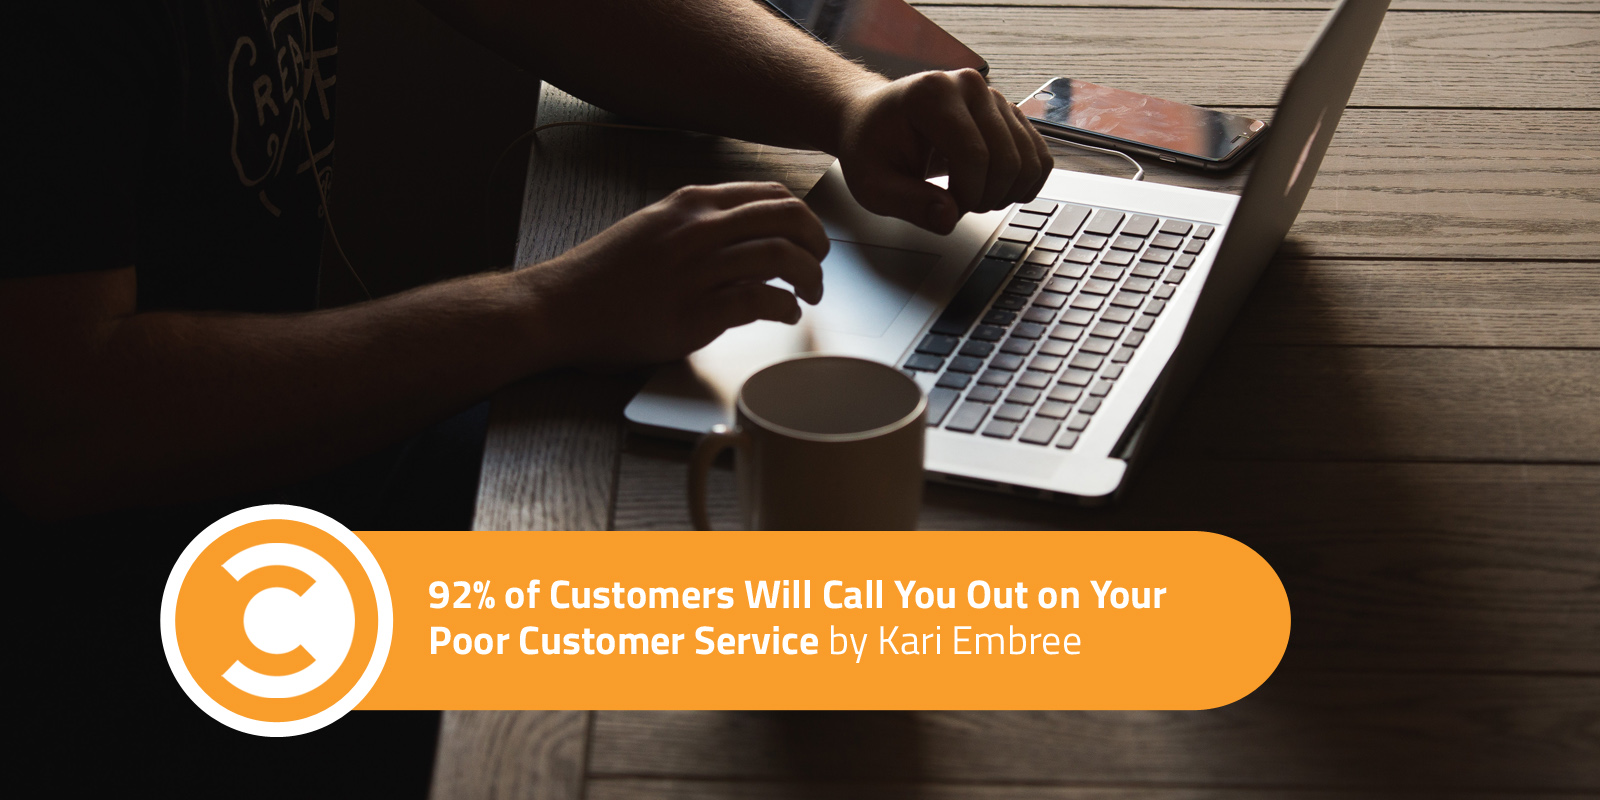 92 Percent of Customers Will Call You Out on Your Poor Customer Service